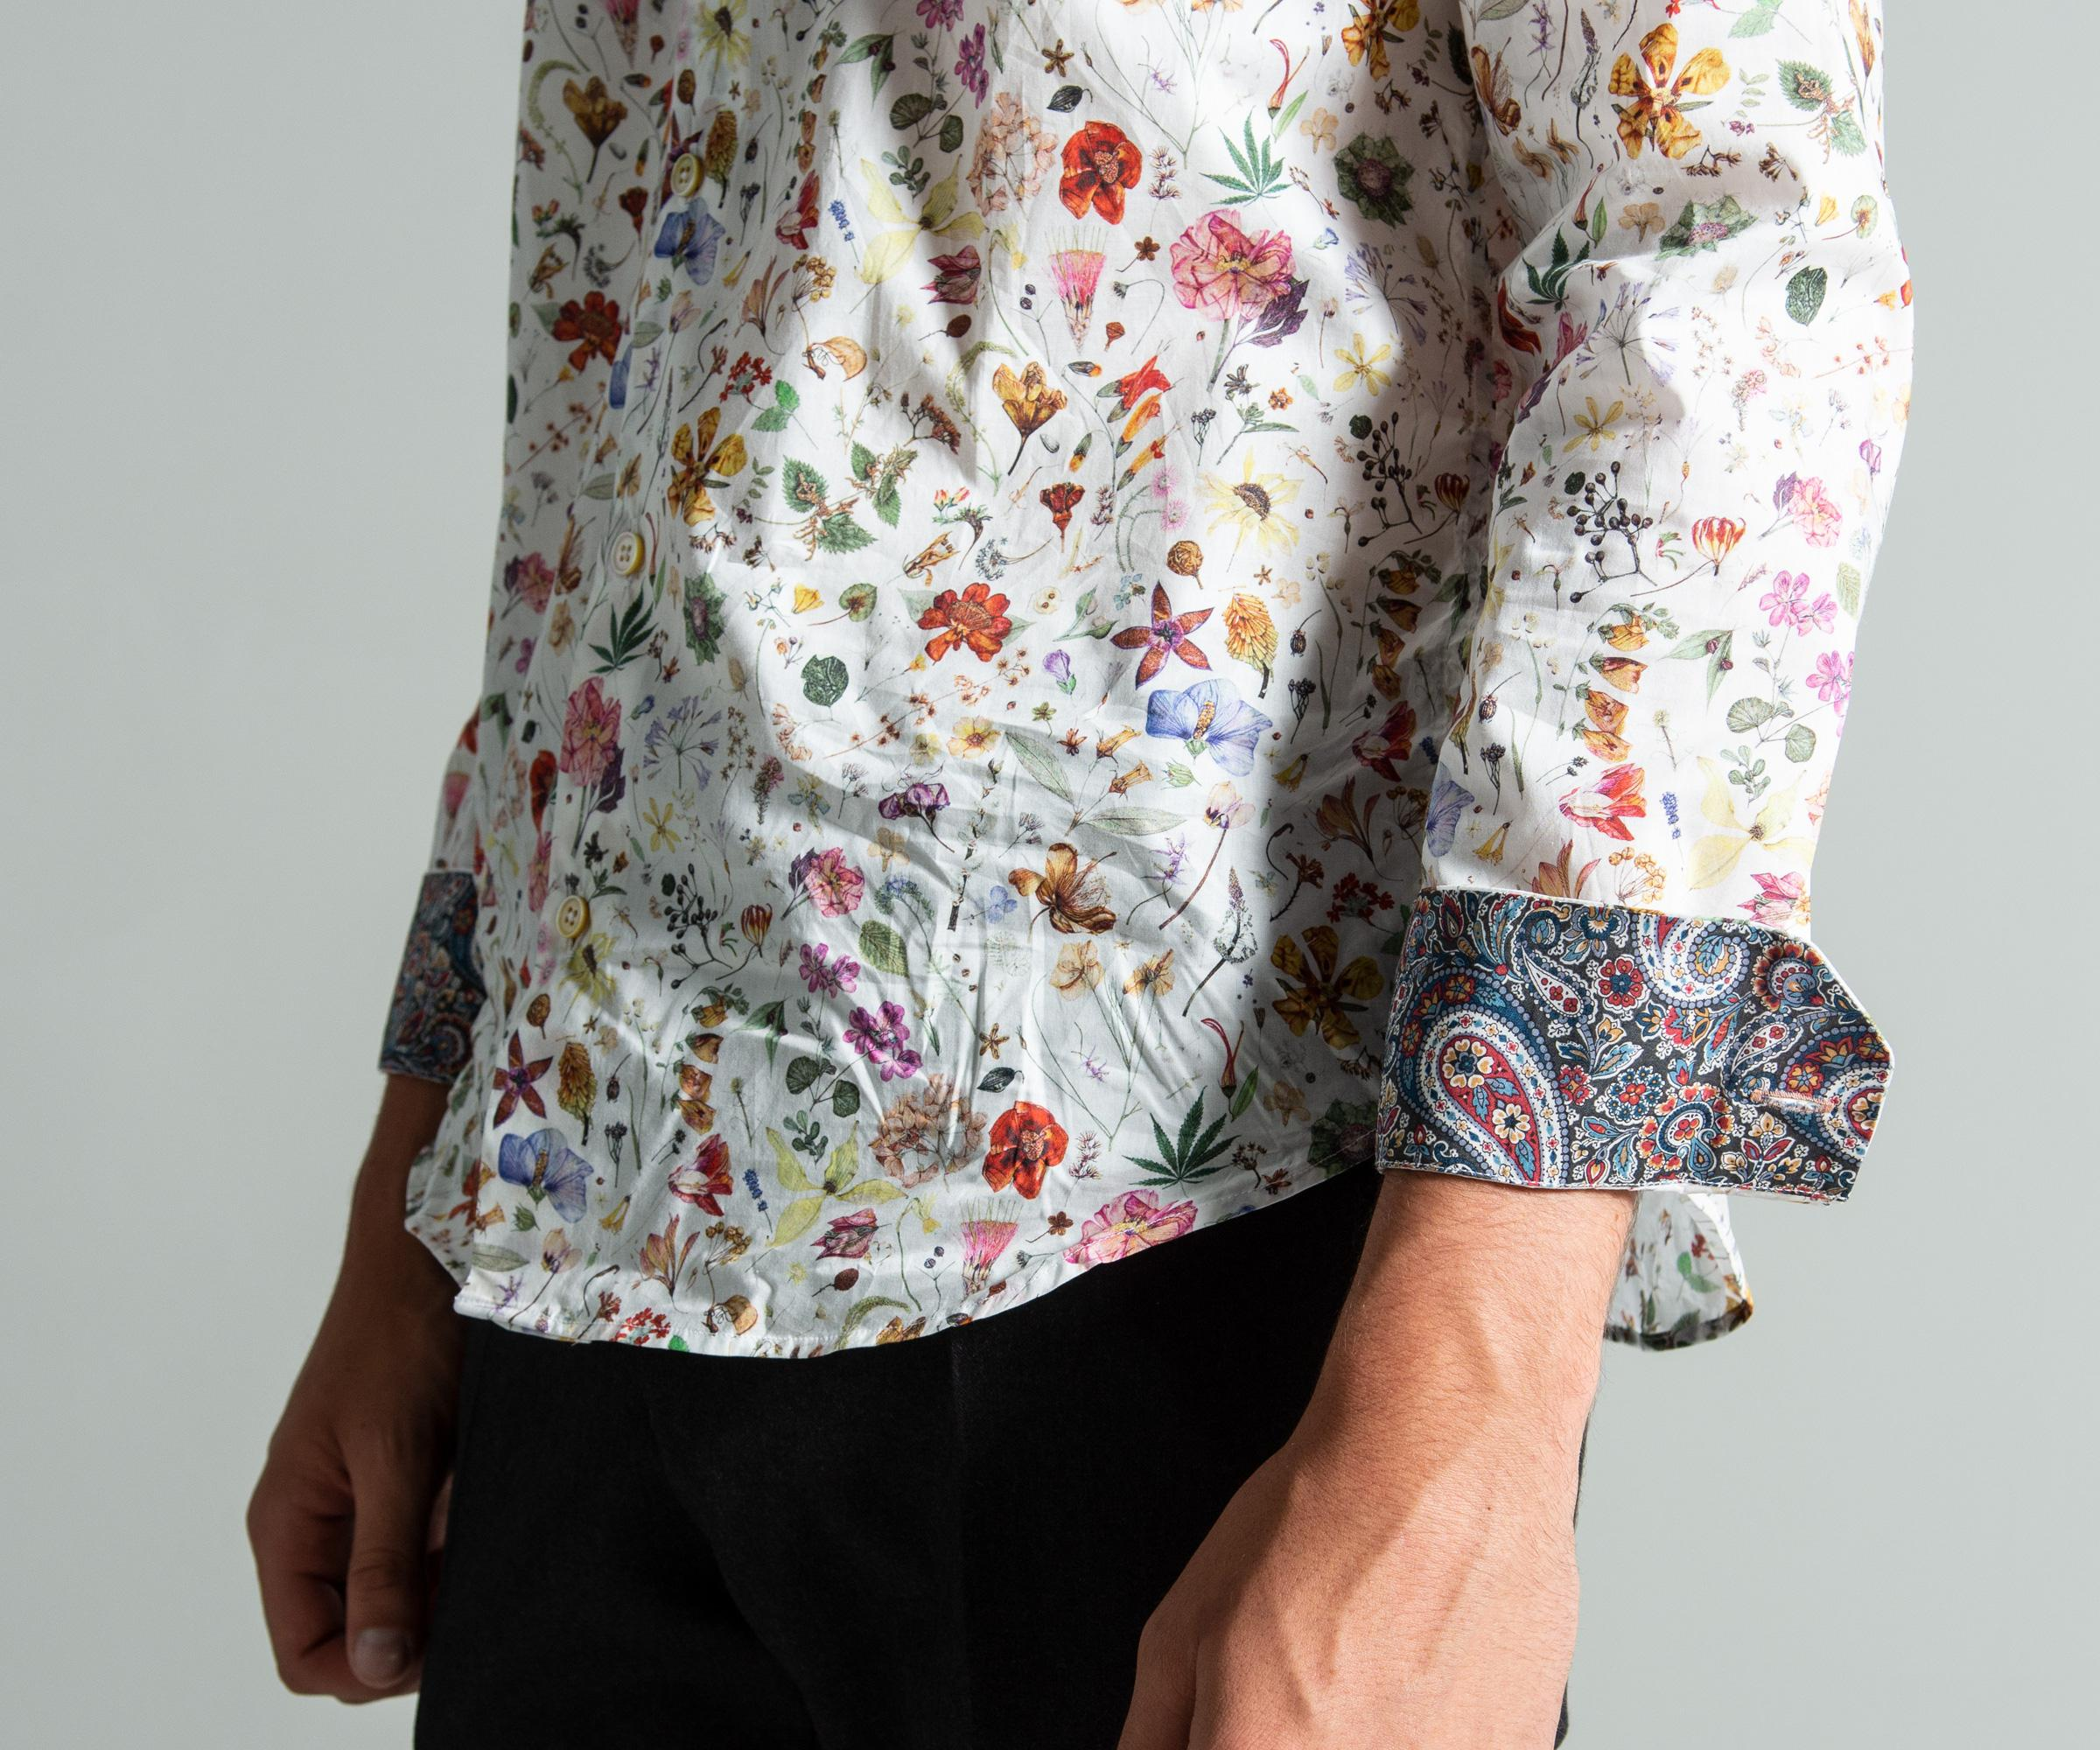 68a2bc9d8dc Lyst - Paul Smith Slim Fit Floral Liberty Print Shirt White in White ...